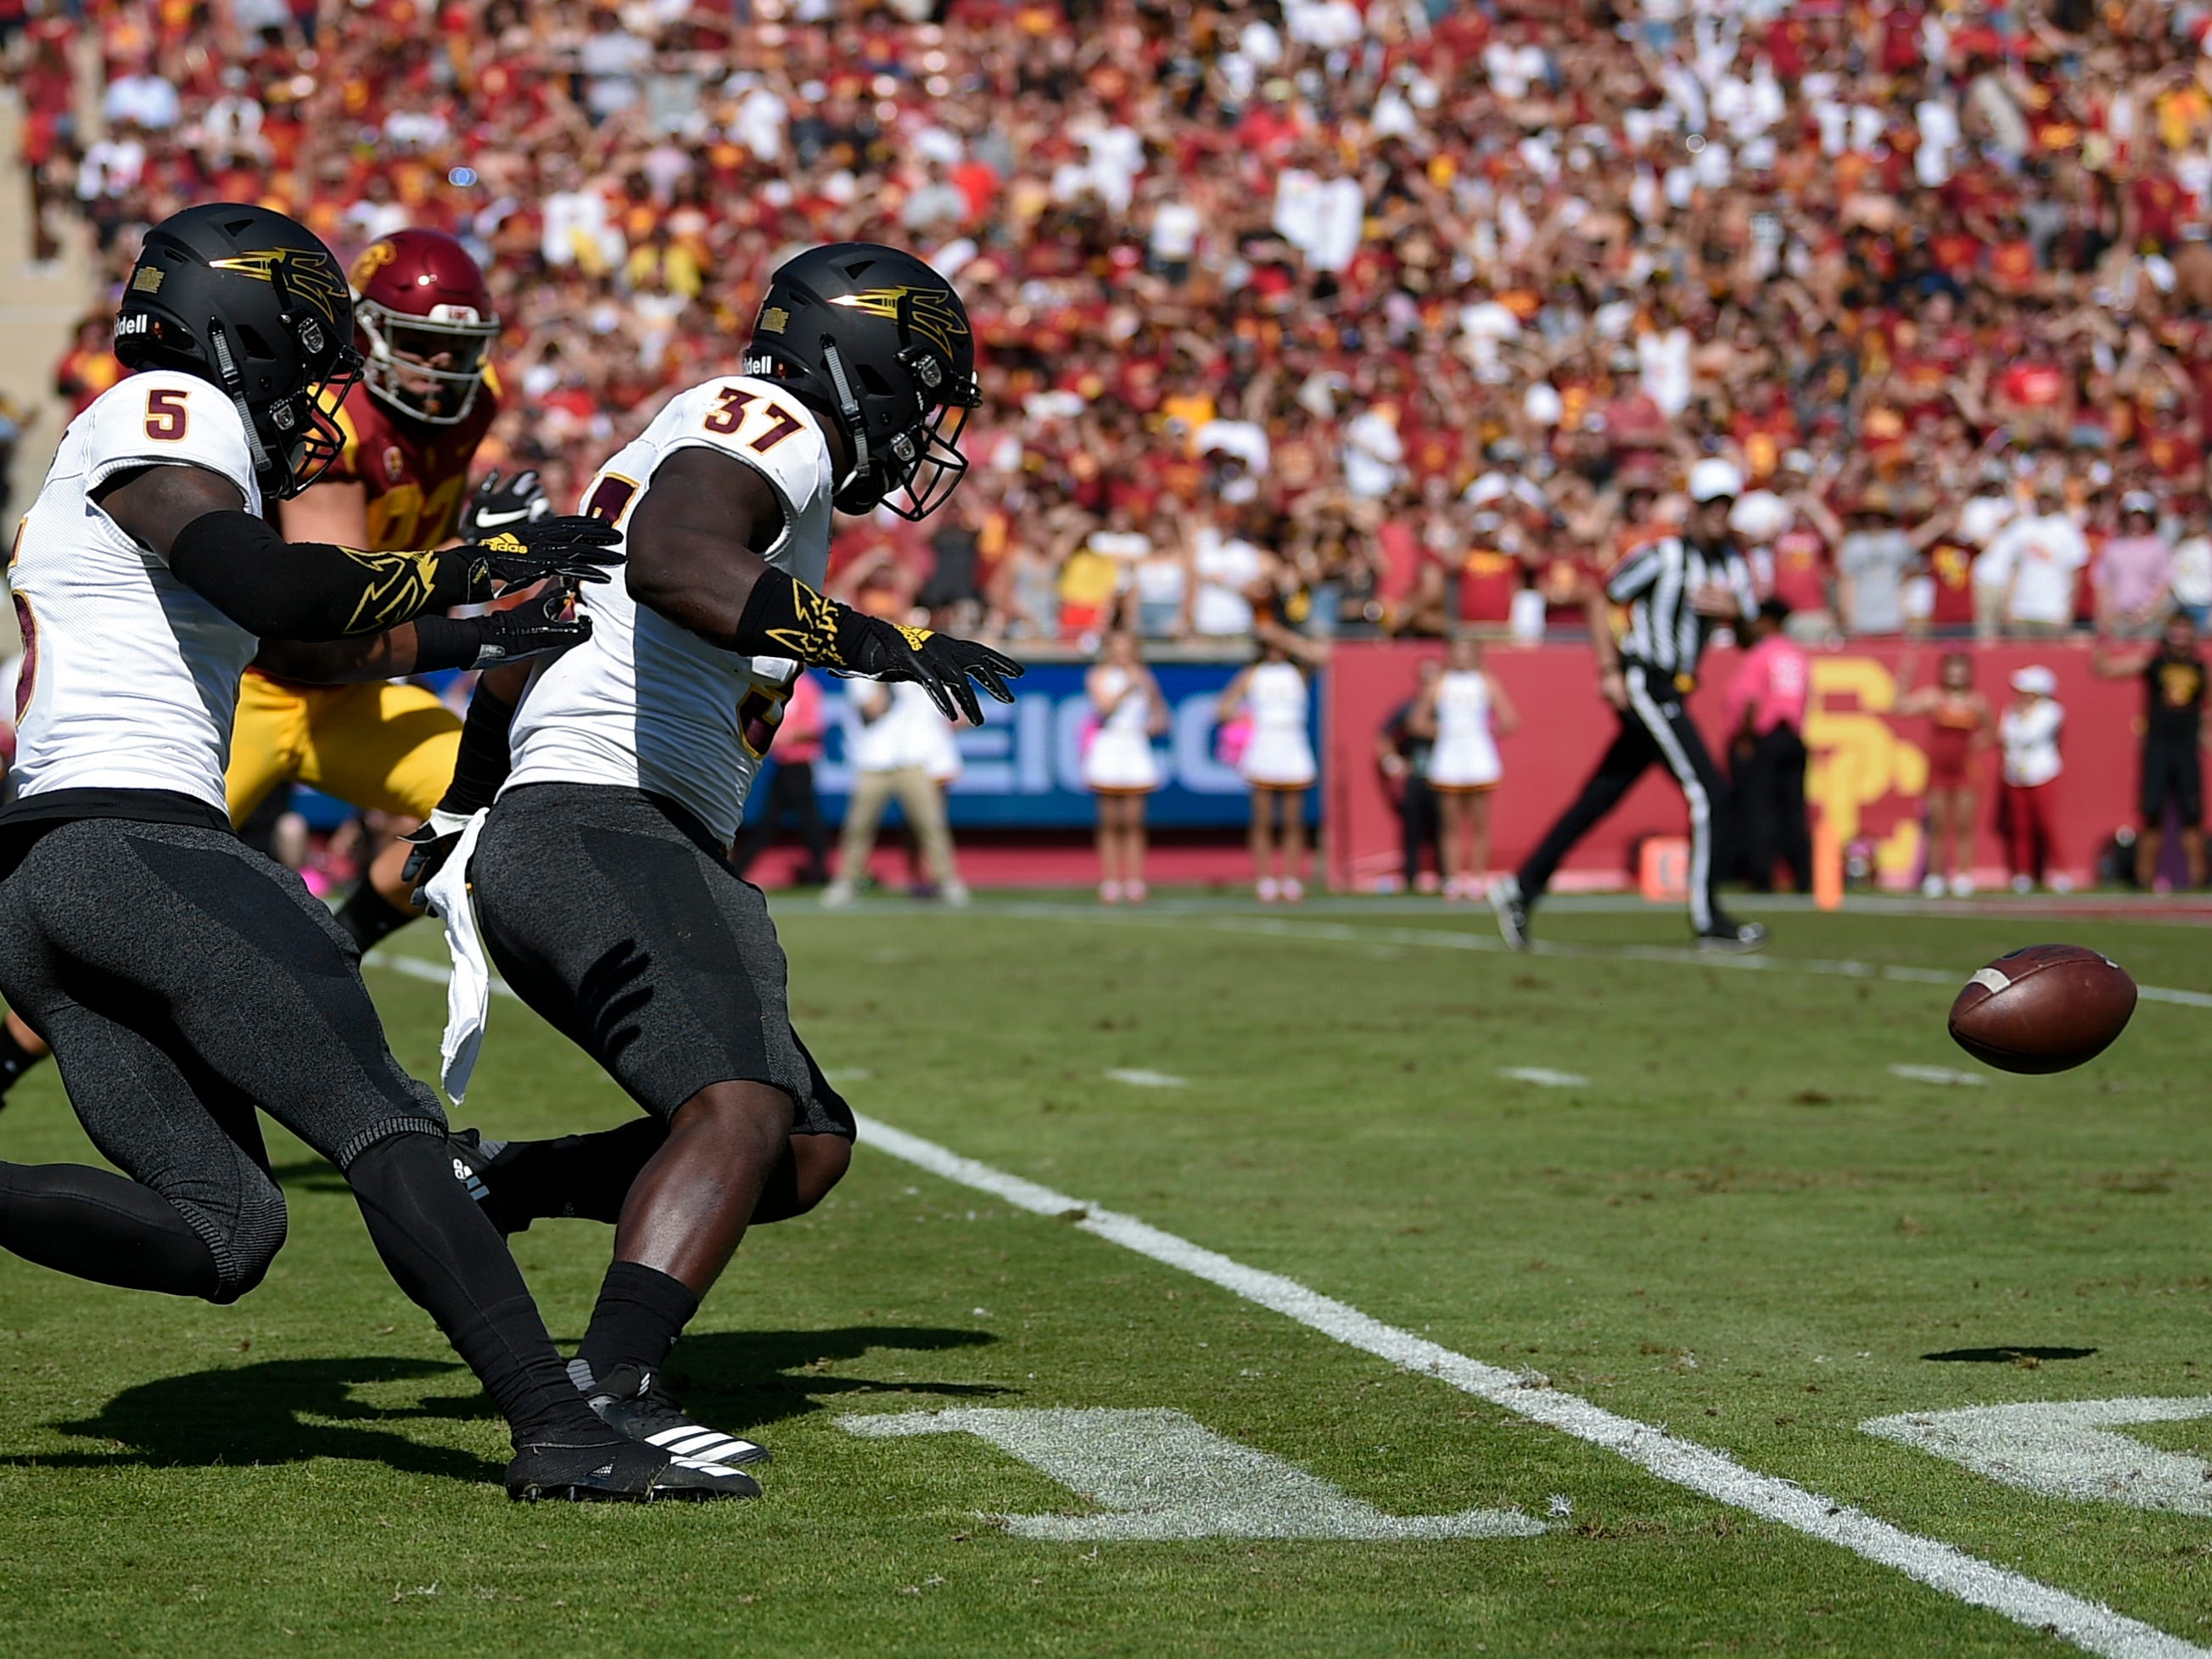 Oct 27, 2018; Los Angeles, CA, USA; Arizona State Sun Devils linebacker Darien Butler (37) chases down a ball after a fumble during the first half against the Southern California Trojans at Los Angeles Memorial Coliseum. Mandatory Credit: Kelvin Kuo-USA TODAY Sports